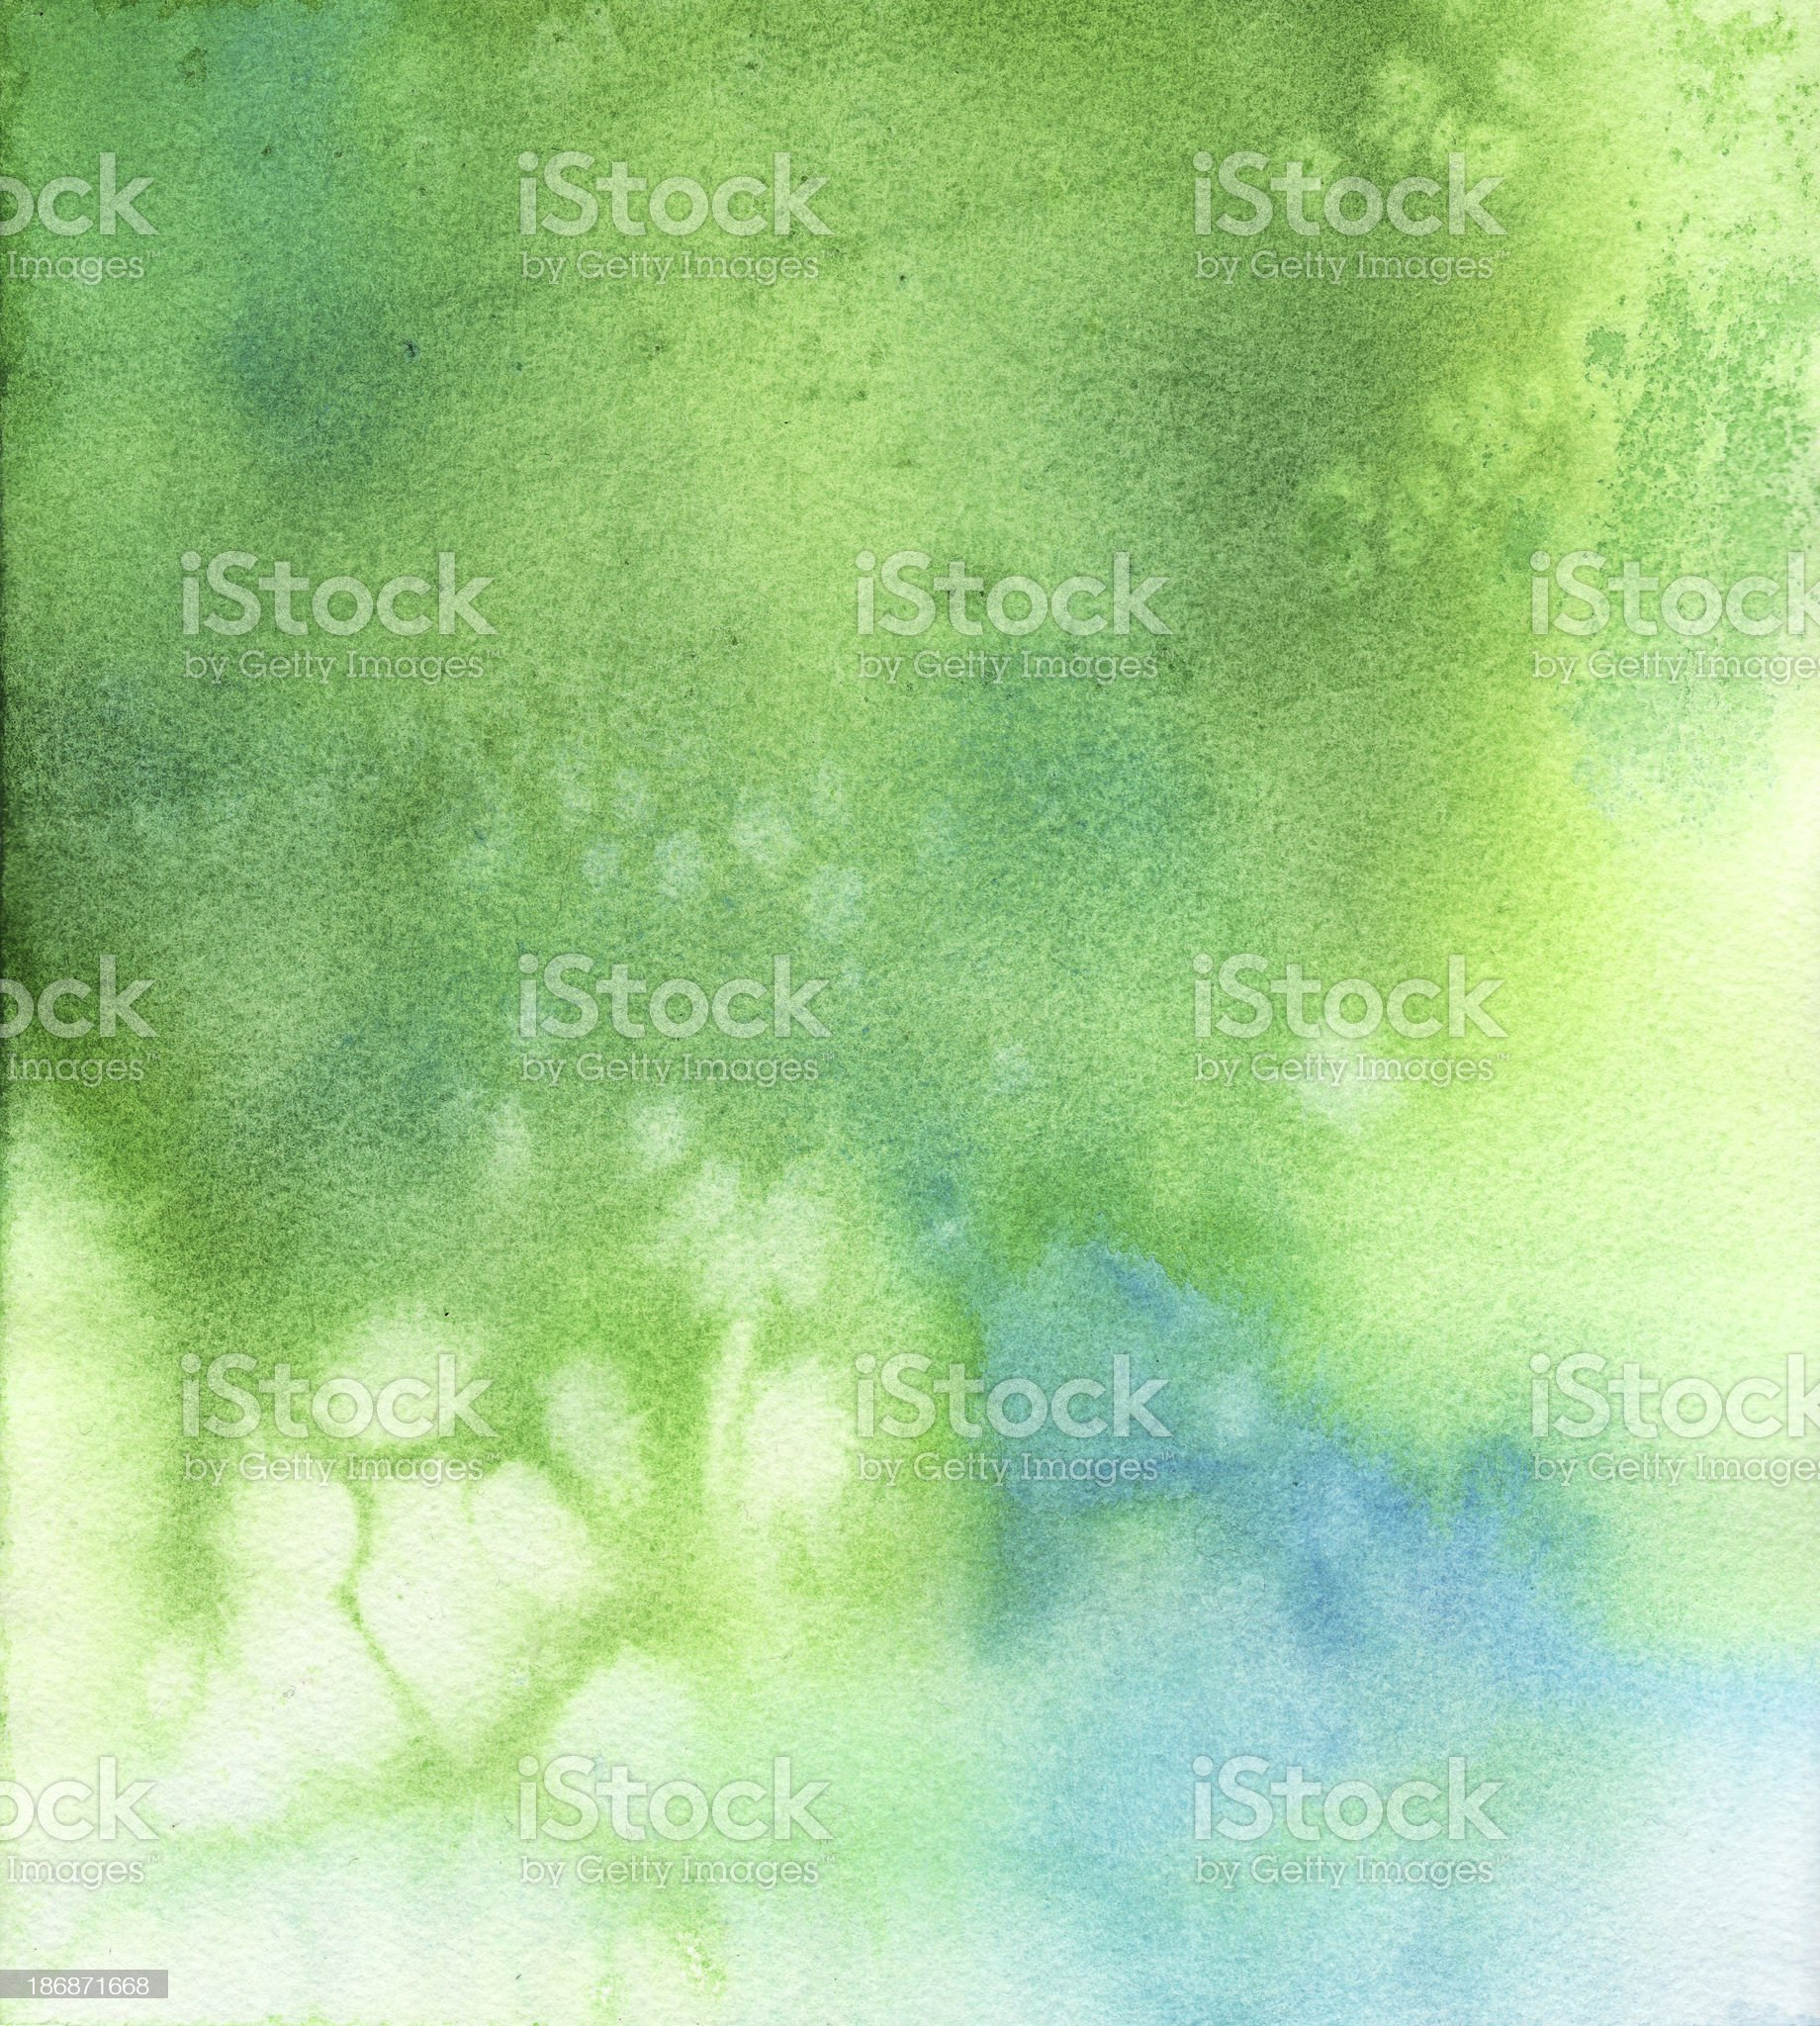 Green Blue Background  Watercolor Painting royalty-free stock vector art